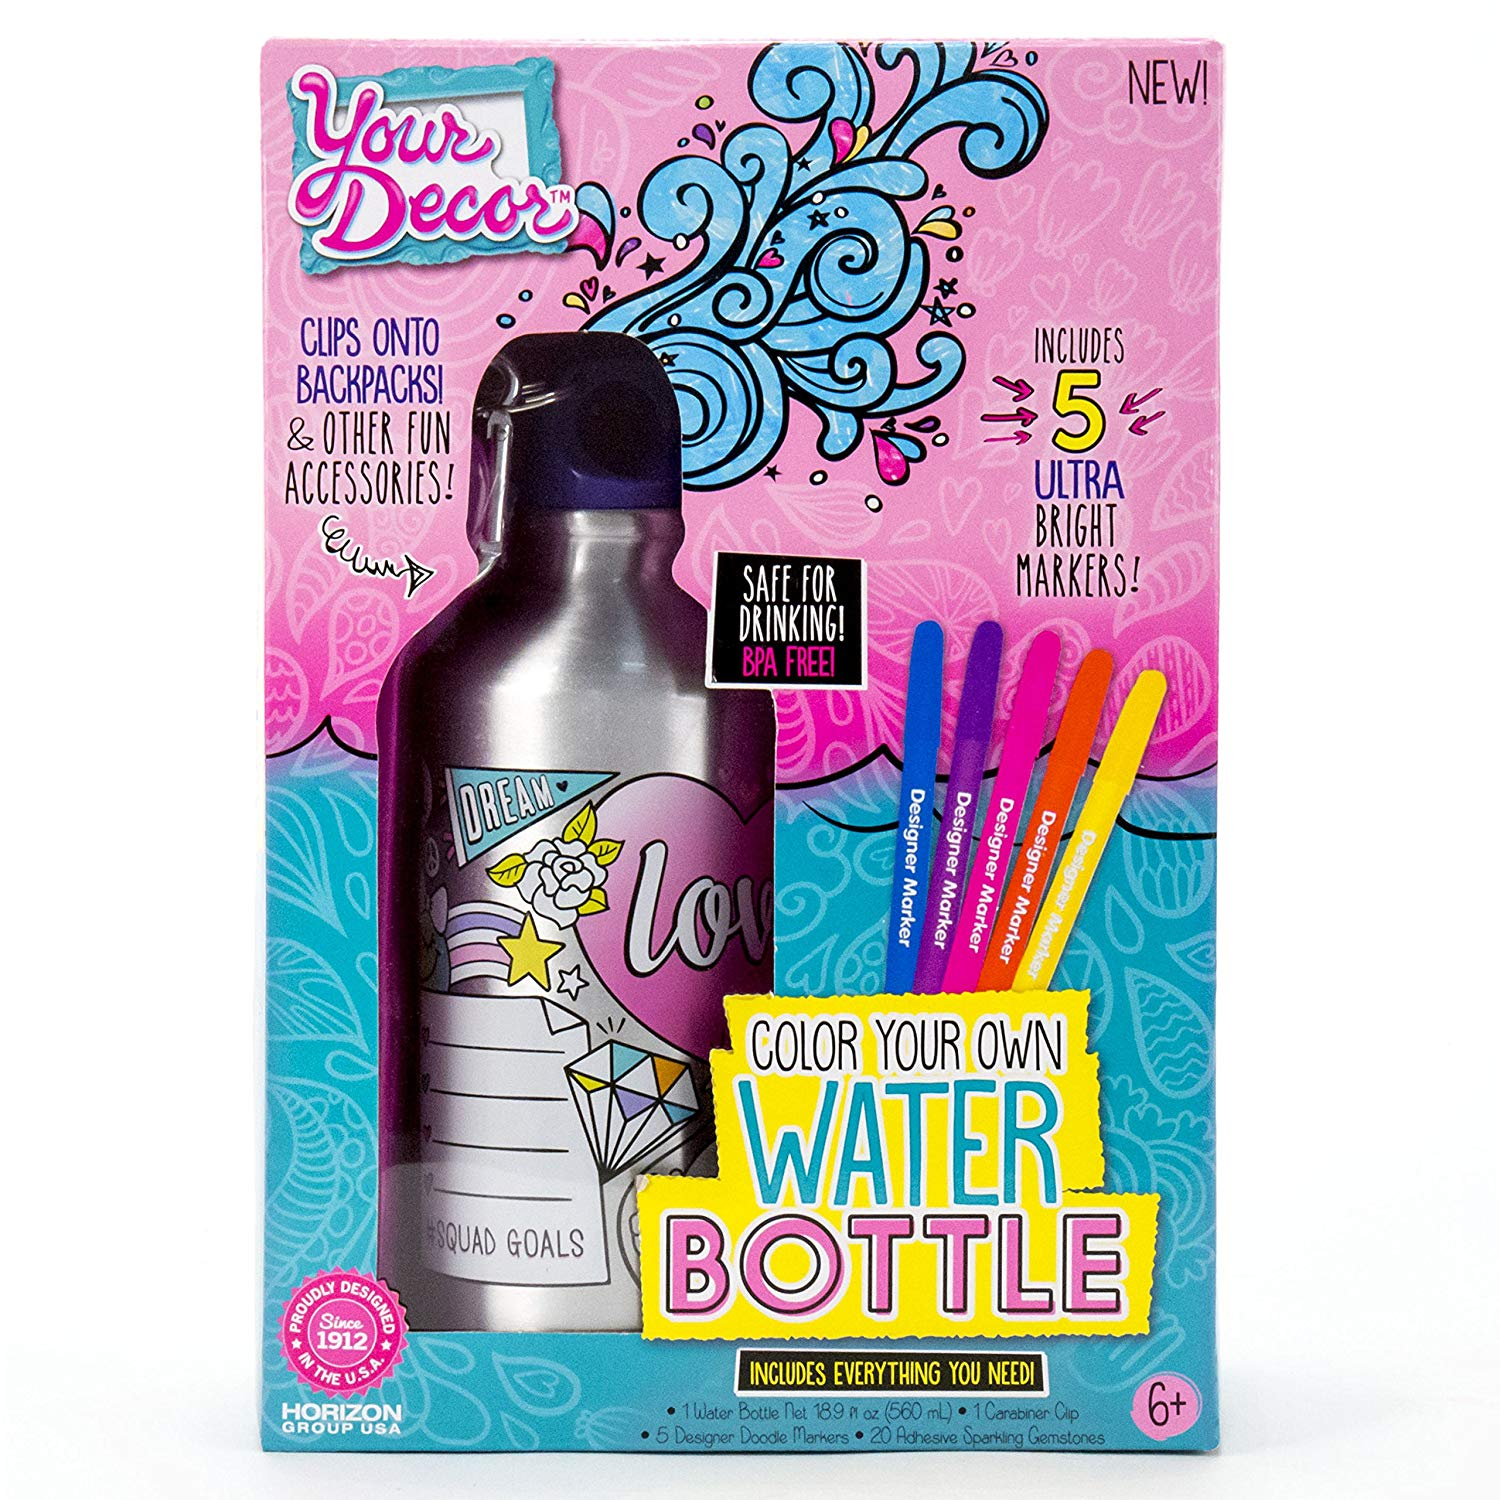 Color your own water bottle set by Your Decor